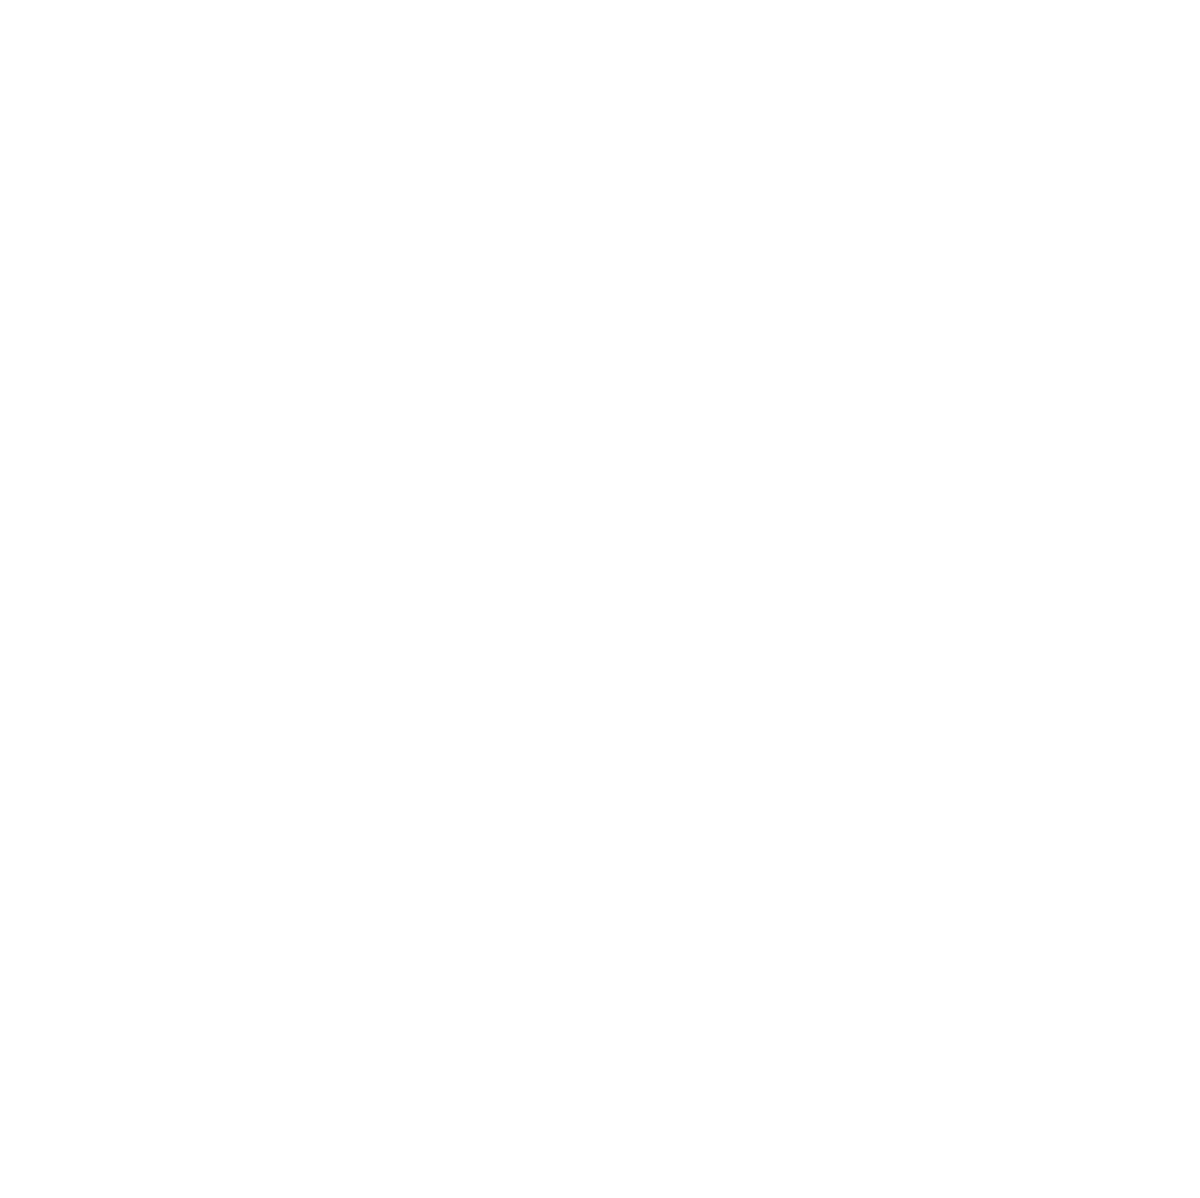 There is Something Different at Muskoka Woods